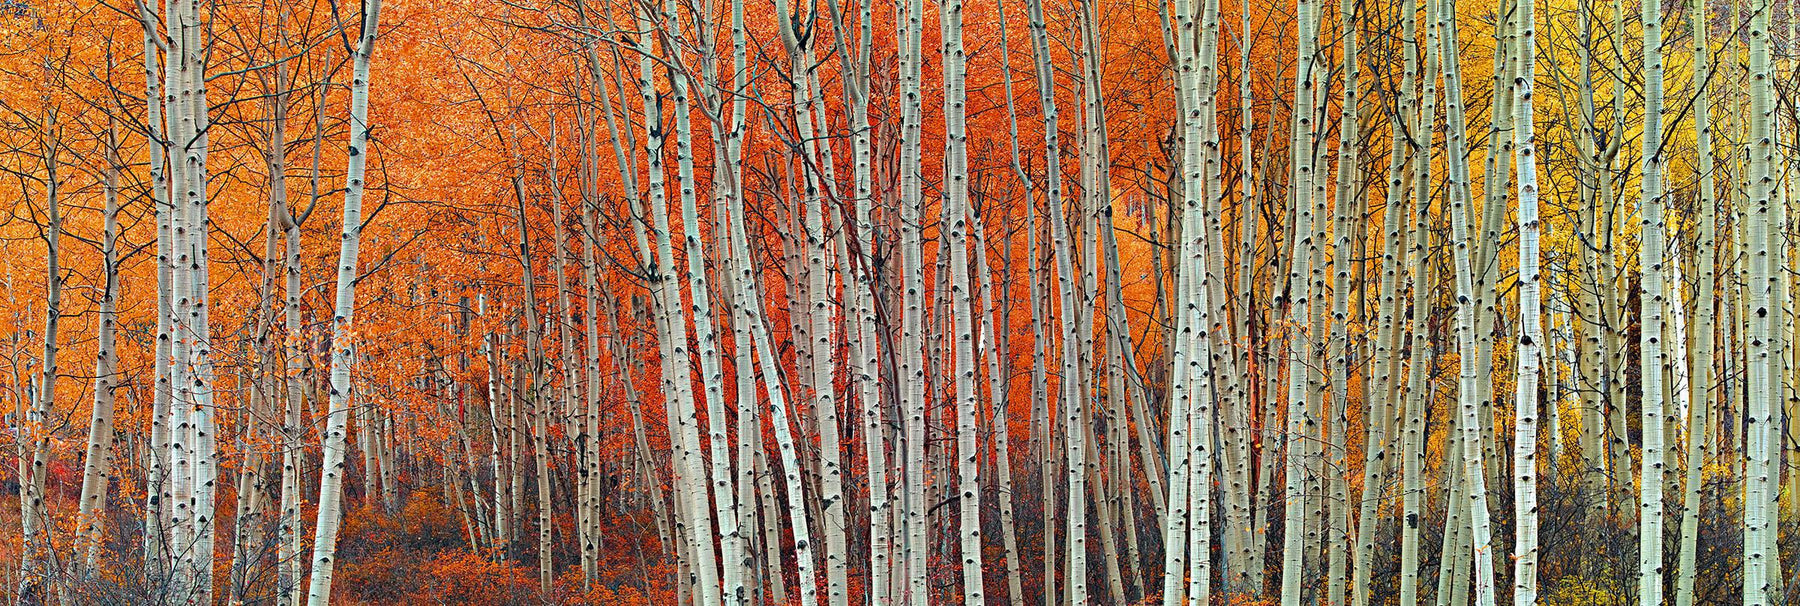 Forest of white birch trees covered with yellow and orange leaves in Aspen Colorado